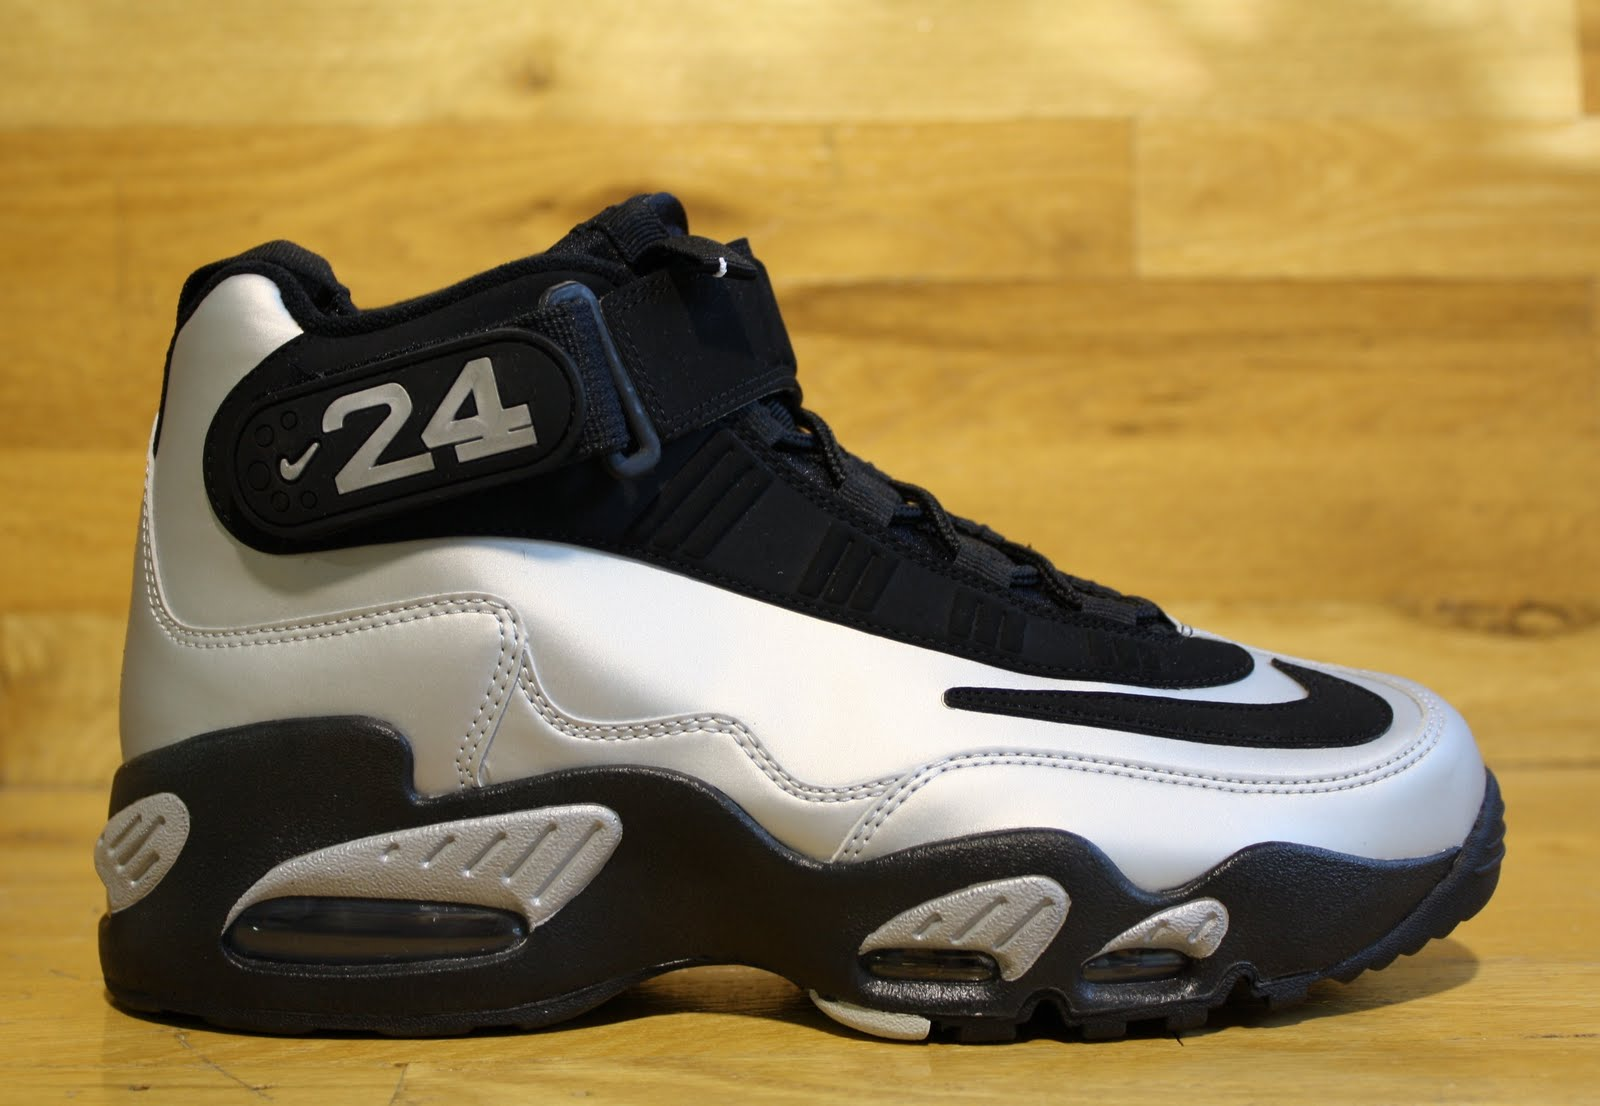 premium selection 9e96a 85d16 New Nike Air Griffey Max 1 Metallic Silver Black Available In Dr Jays Stores